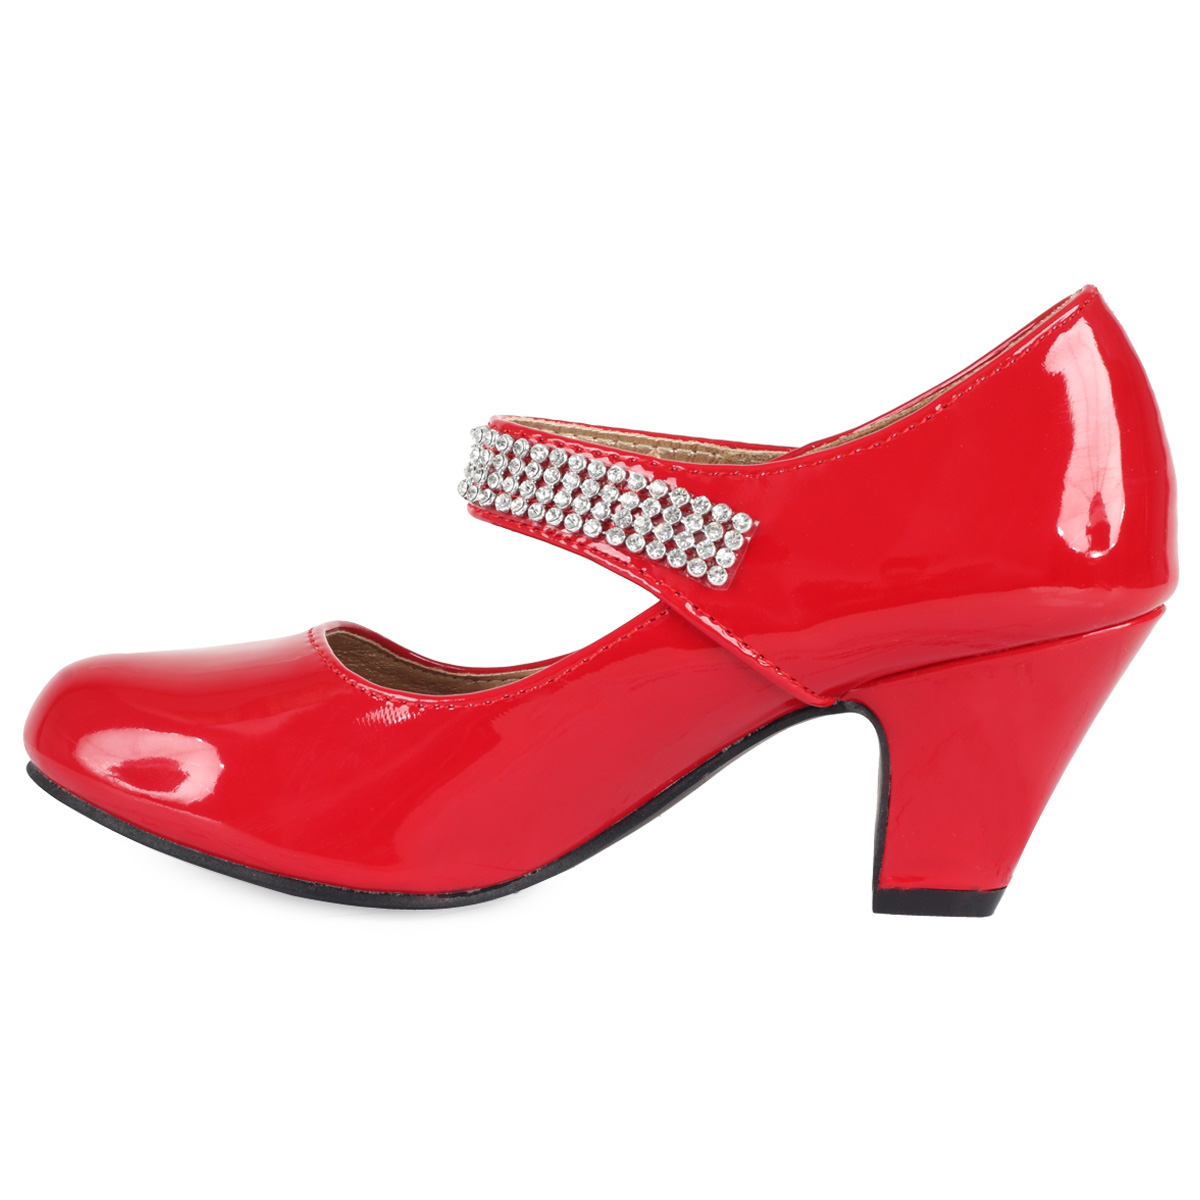 Red Small Heel Shoes - Is Heel